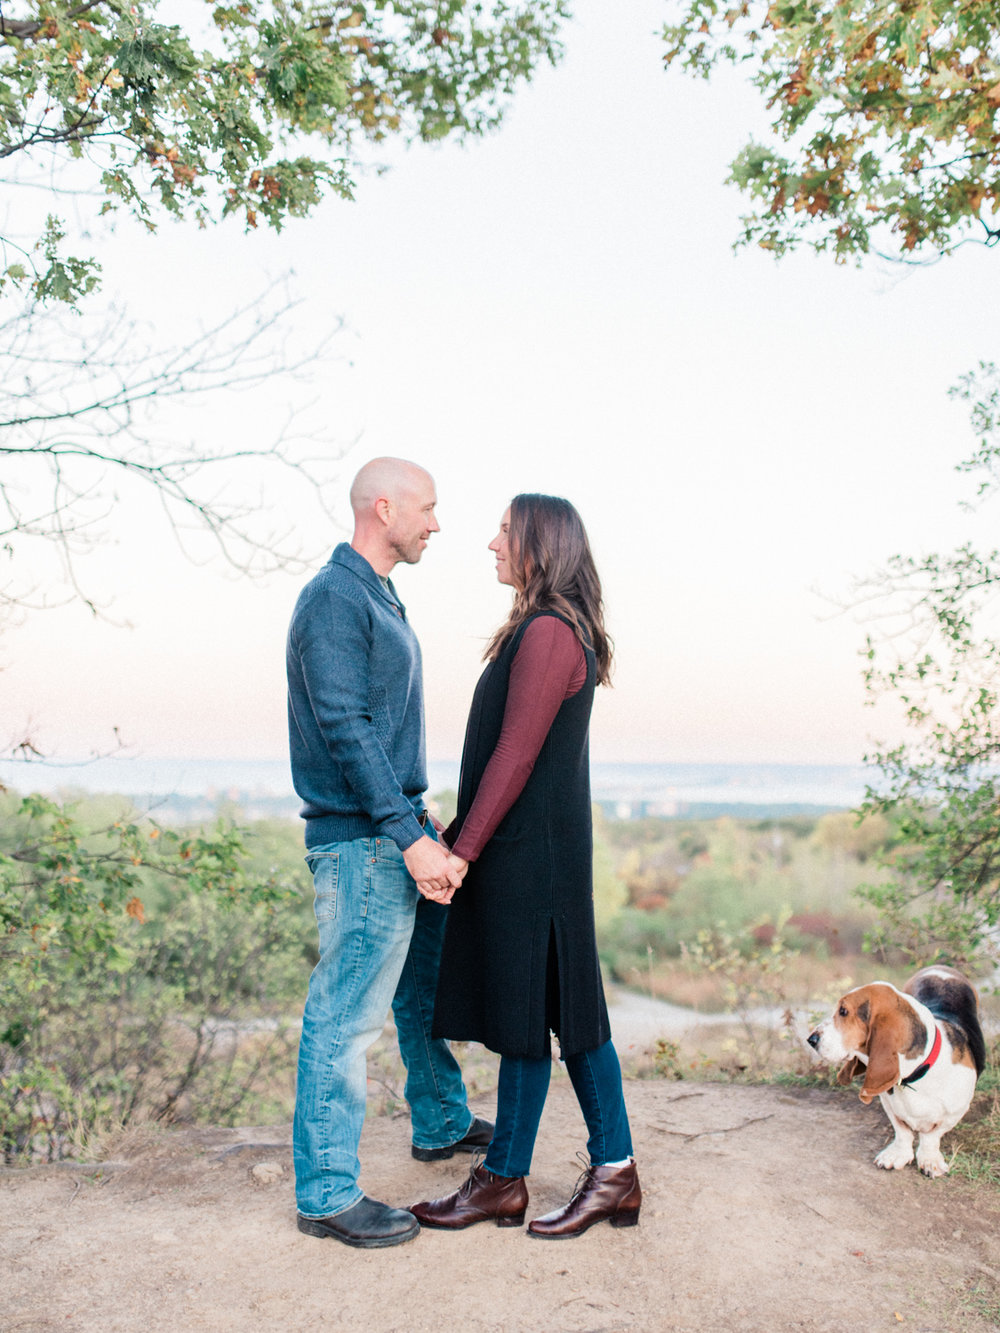 Jess & Tom | Kernclif Park Engagement